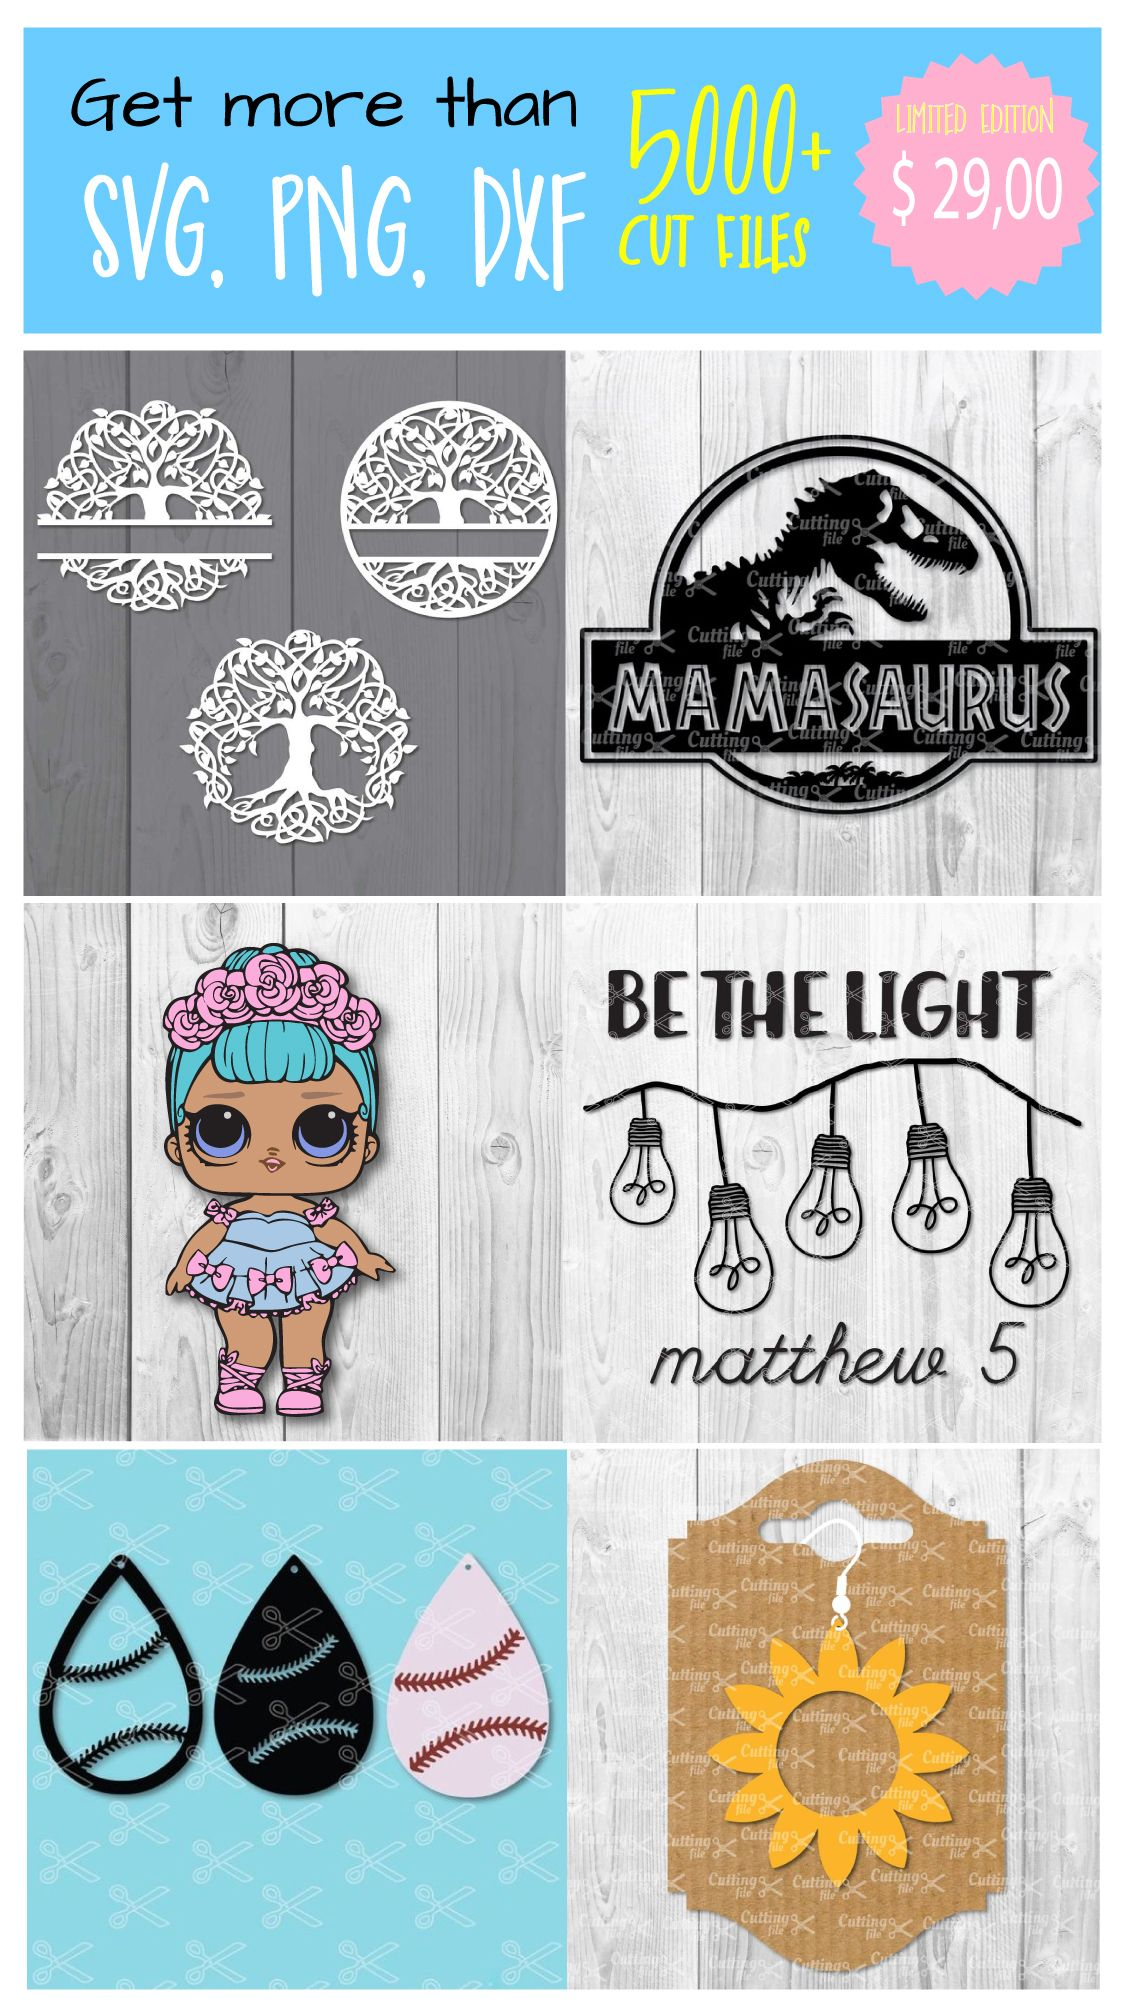 Pin by J Tim on Silhouette Diy vinyl projects, Crafts